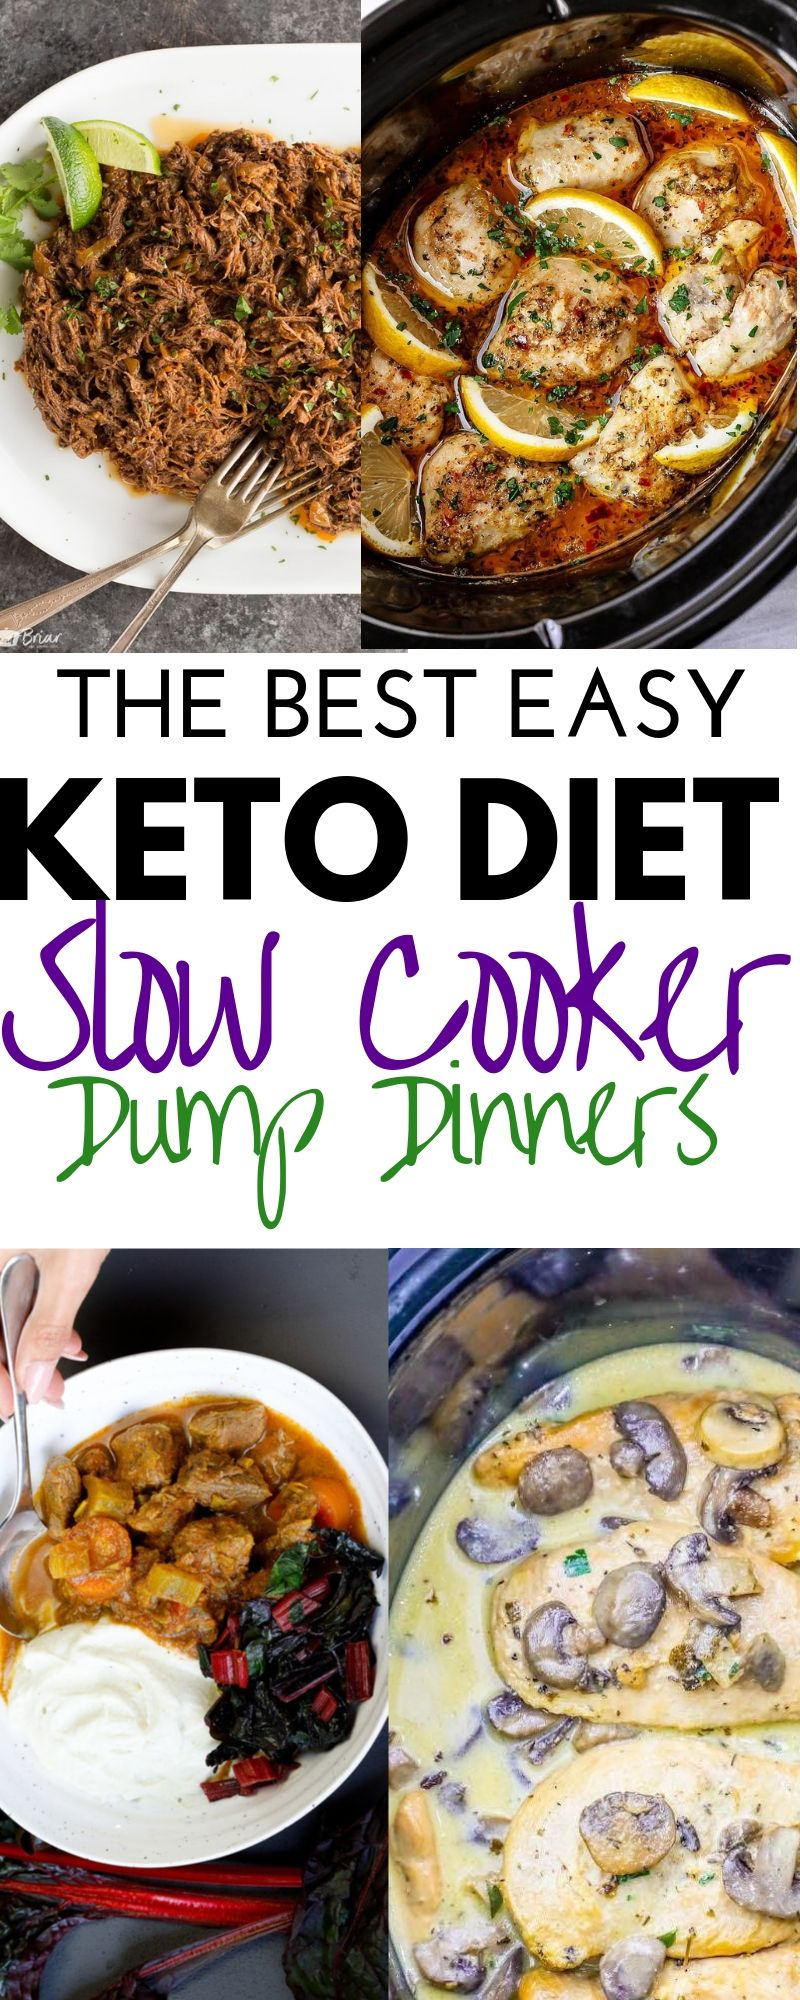 The 7 Best Keto Crockpot Recipes For Your Slow Cooker Low Carb Crock Pot Recipes Keto Crockpot Recipes Slow Cooker Keto Recipes